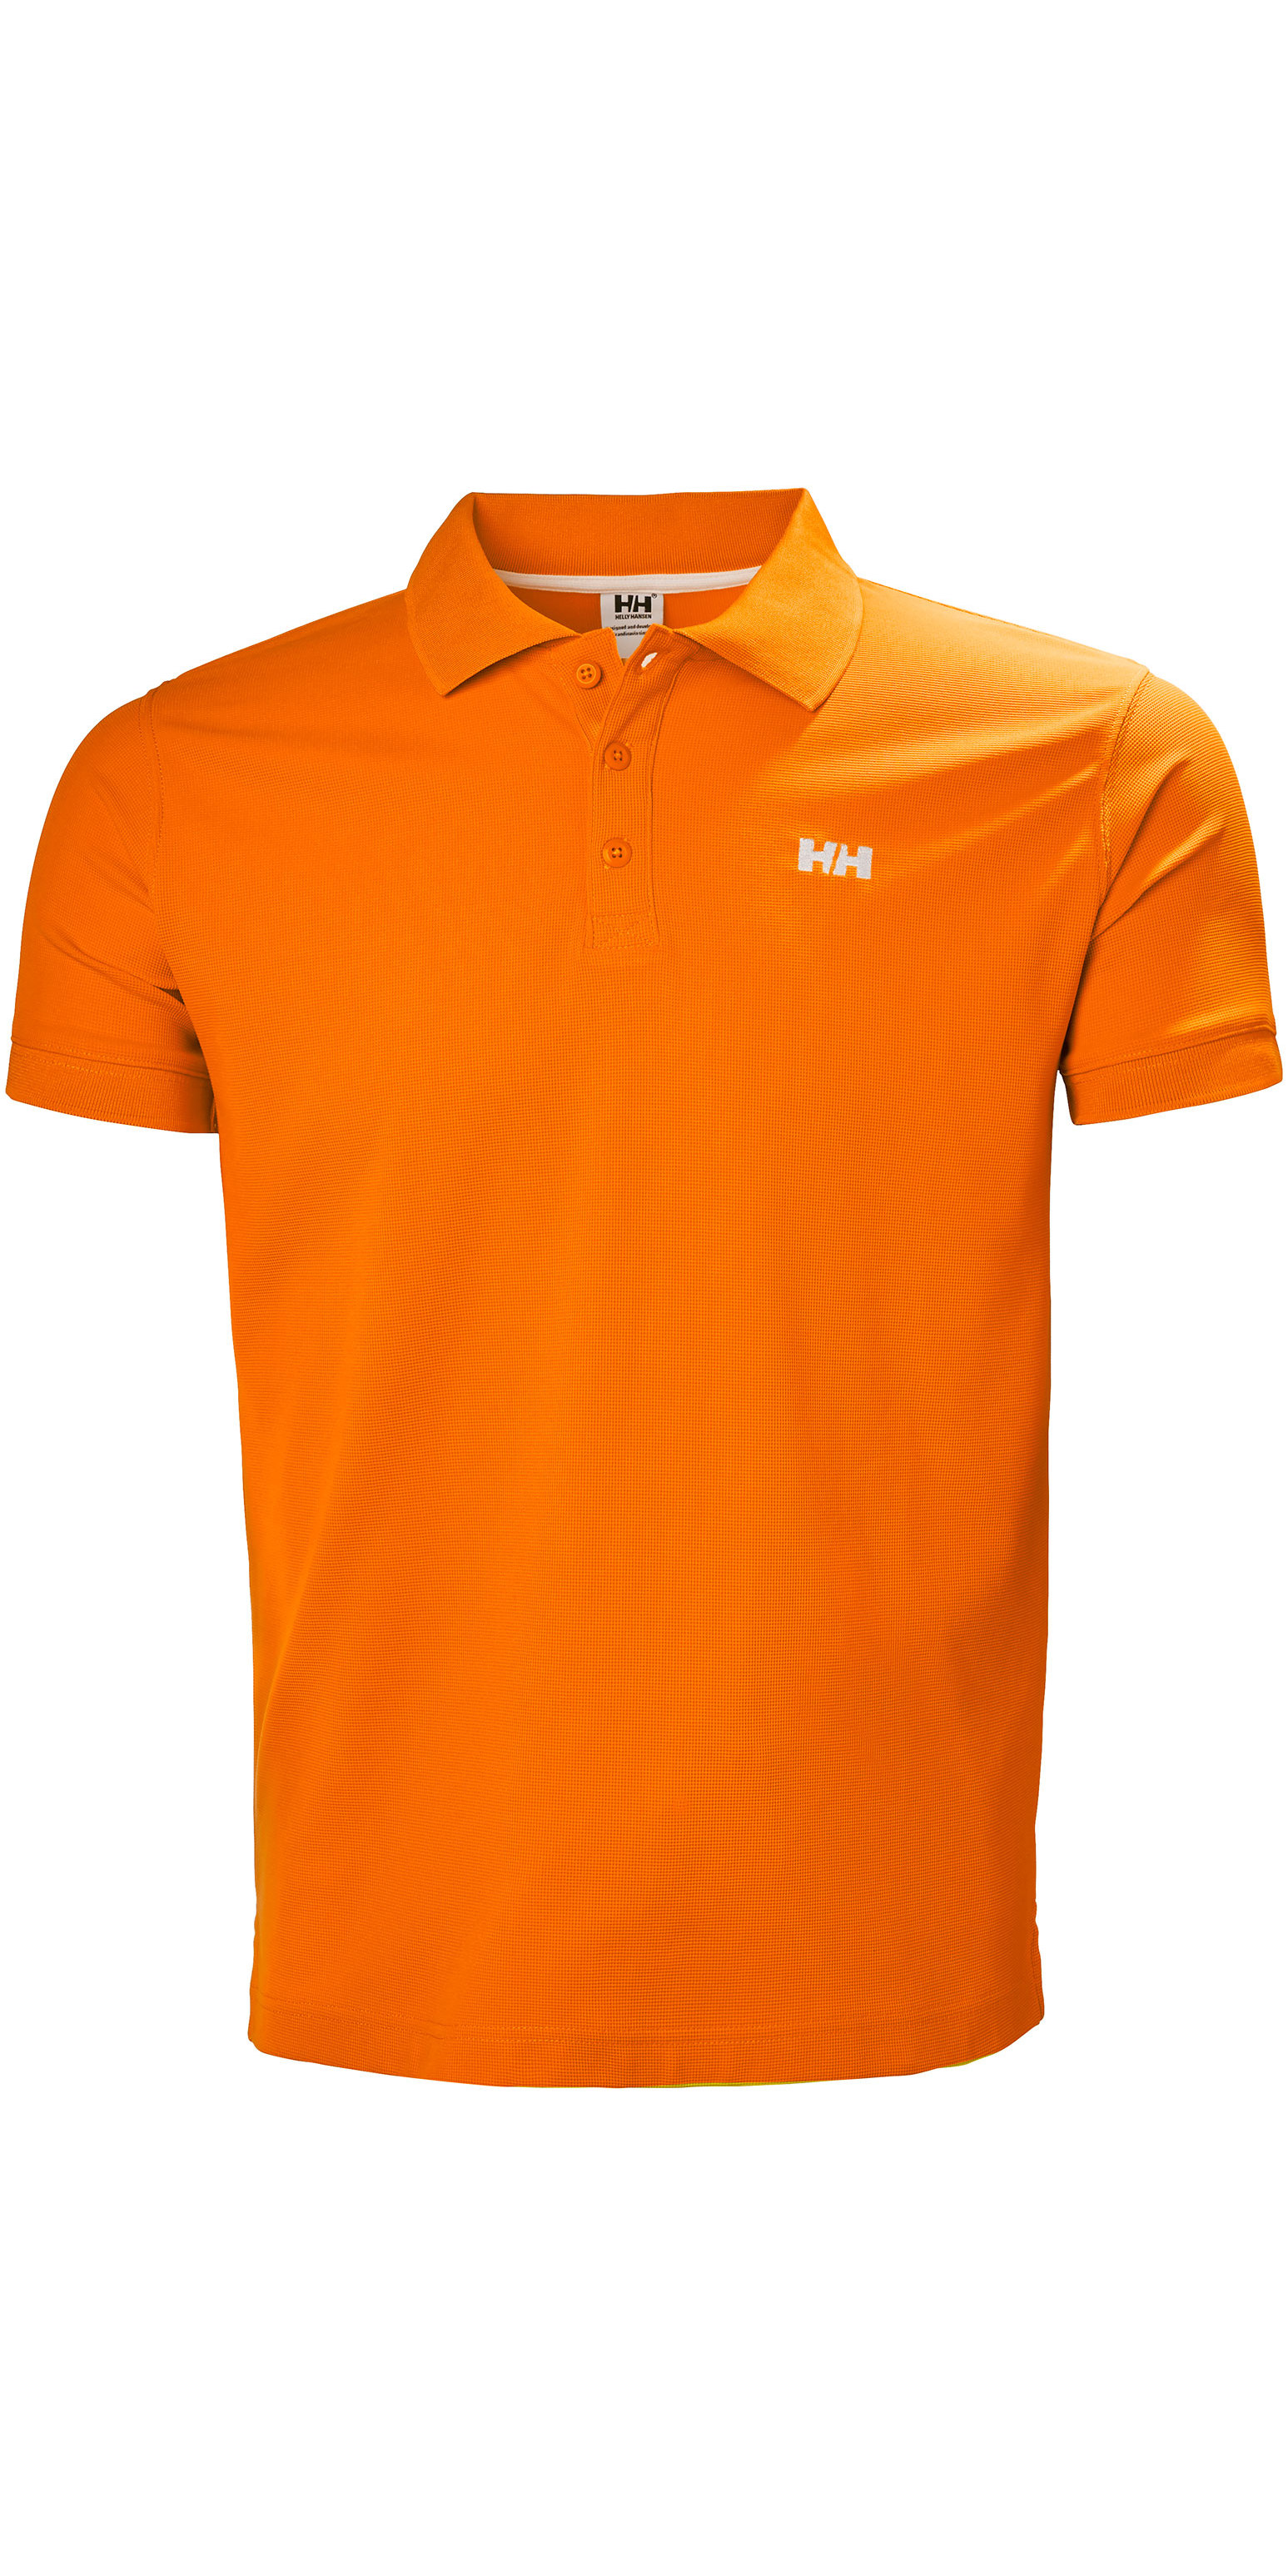 6856cc9350 2019 Helly Hansen Driftline Polo Shirt Blaze Orange 50584 - Polo Shirts -  Shore Wear - Sailing | Wetsuit Outlet